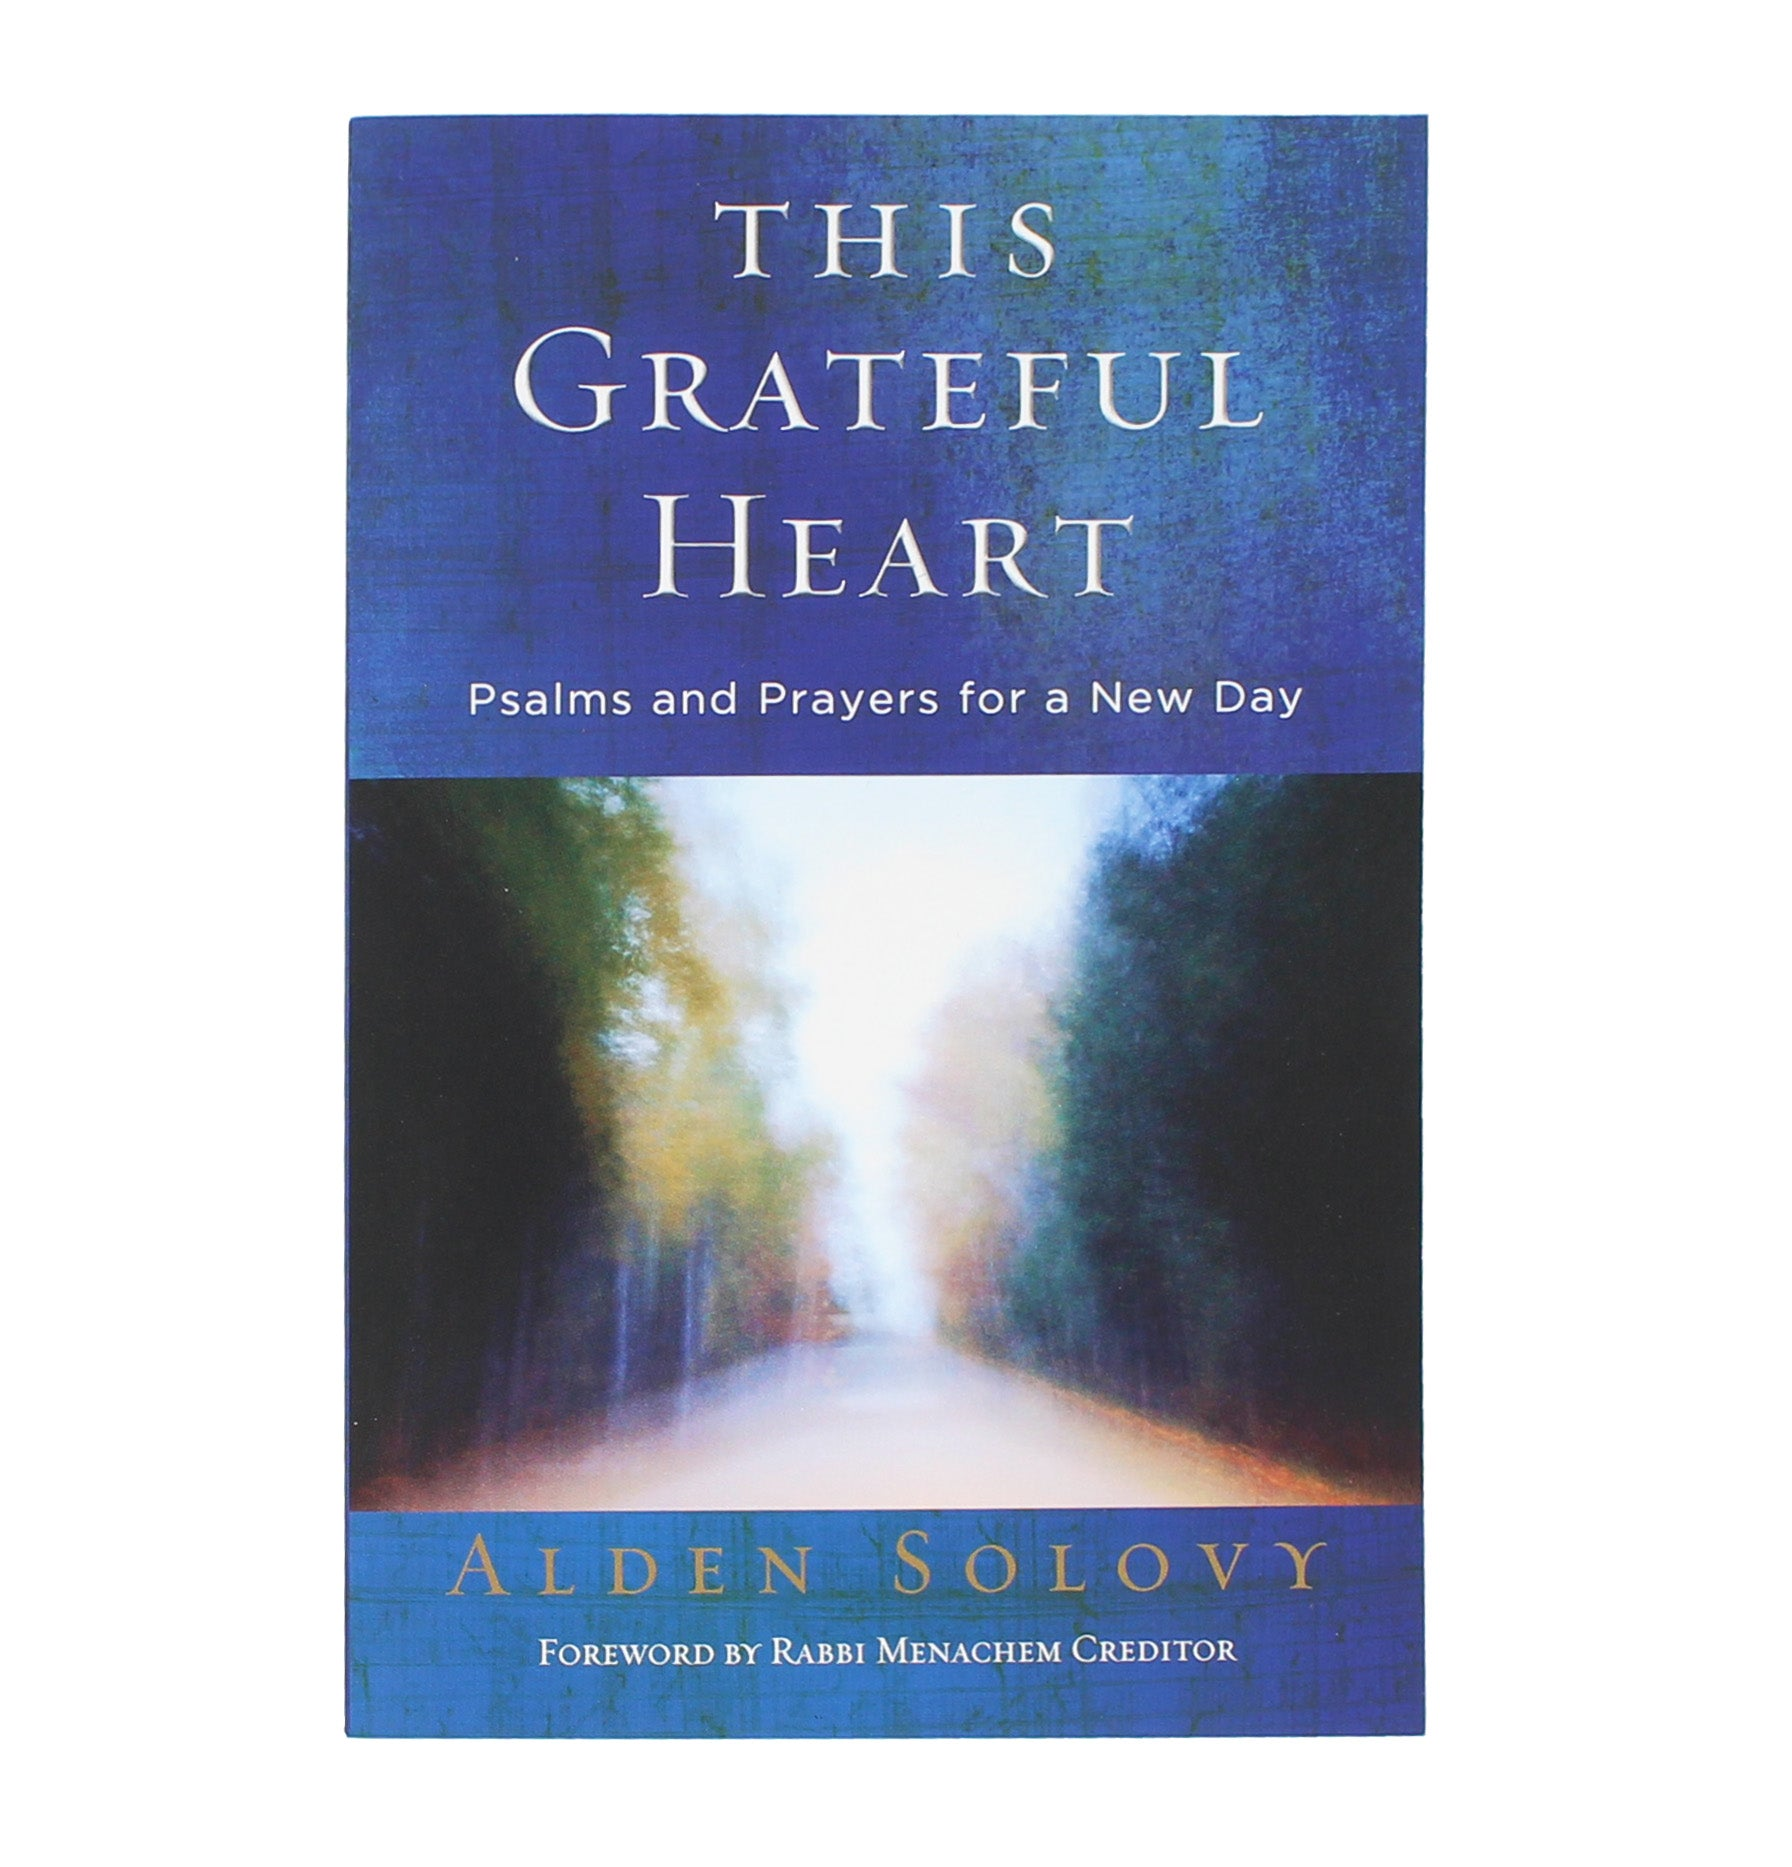 This Grateful Heart: Psalms and Prayers for a New Day